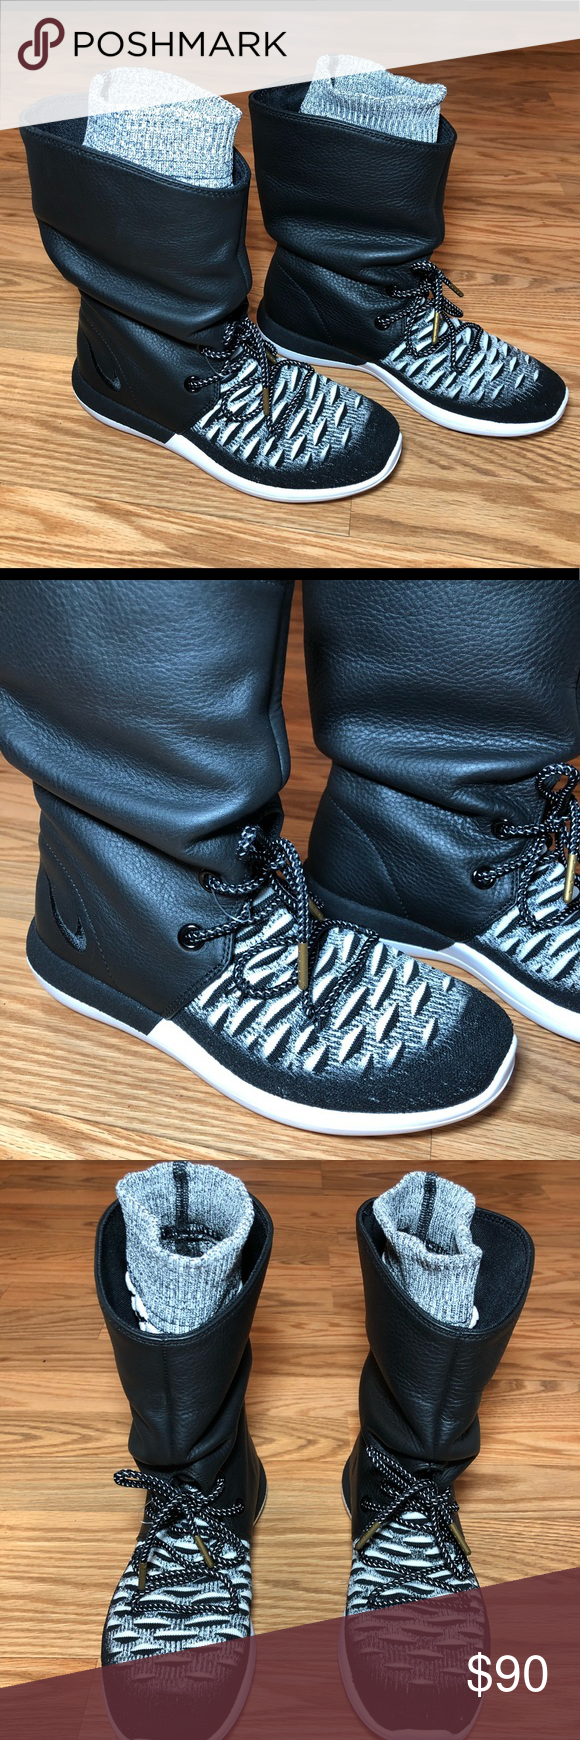 pretty nice 68581 c068a Nike Roshe Two Hi Flyknit Women s 7 Black   White Nike Roshe Hi Flyknit  Women s 7 Black   White High Top Lace Up Attached Inside Sock Brand New w o  Box ...